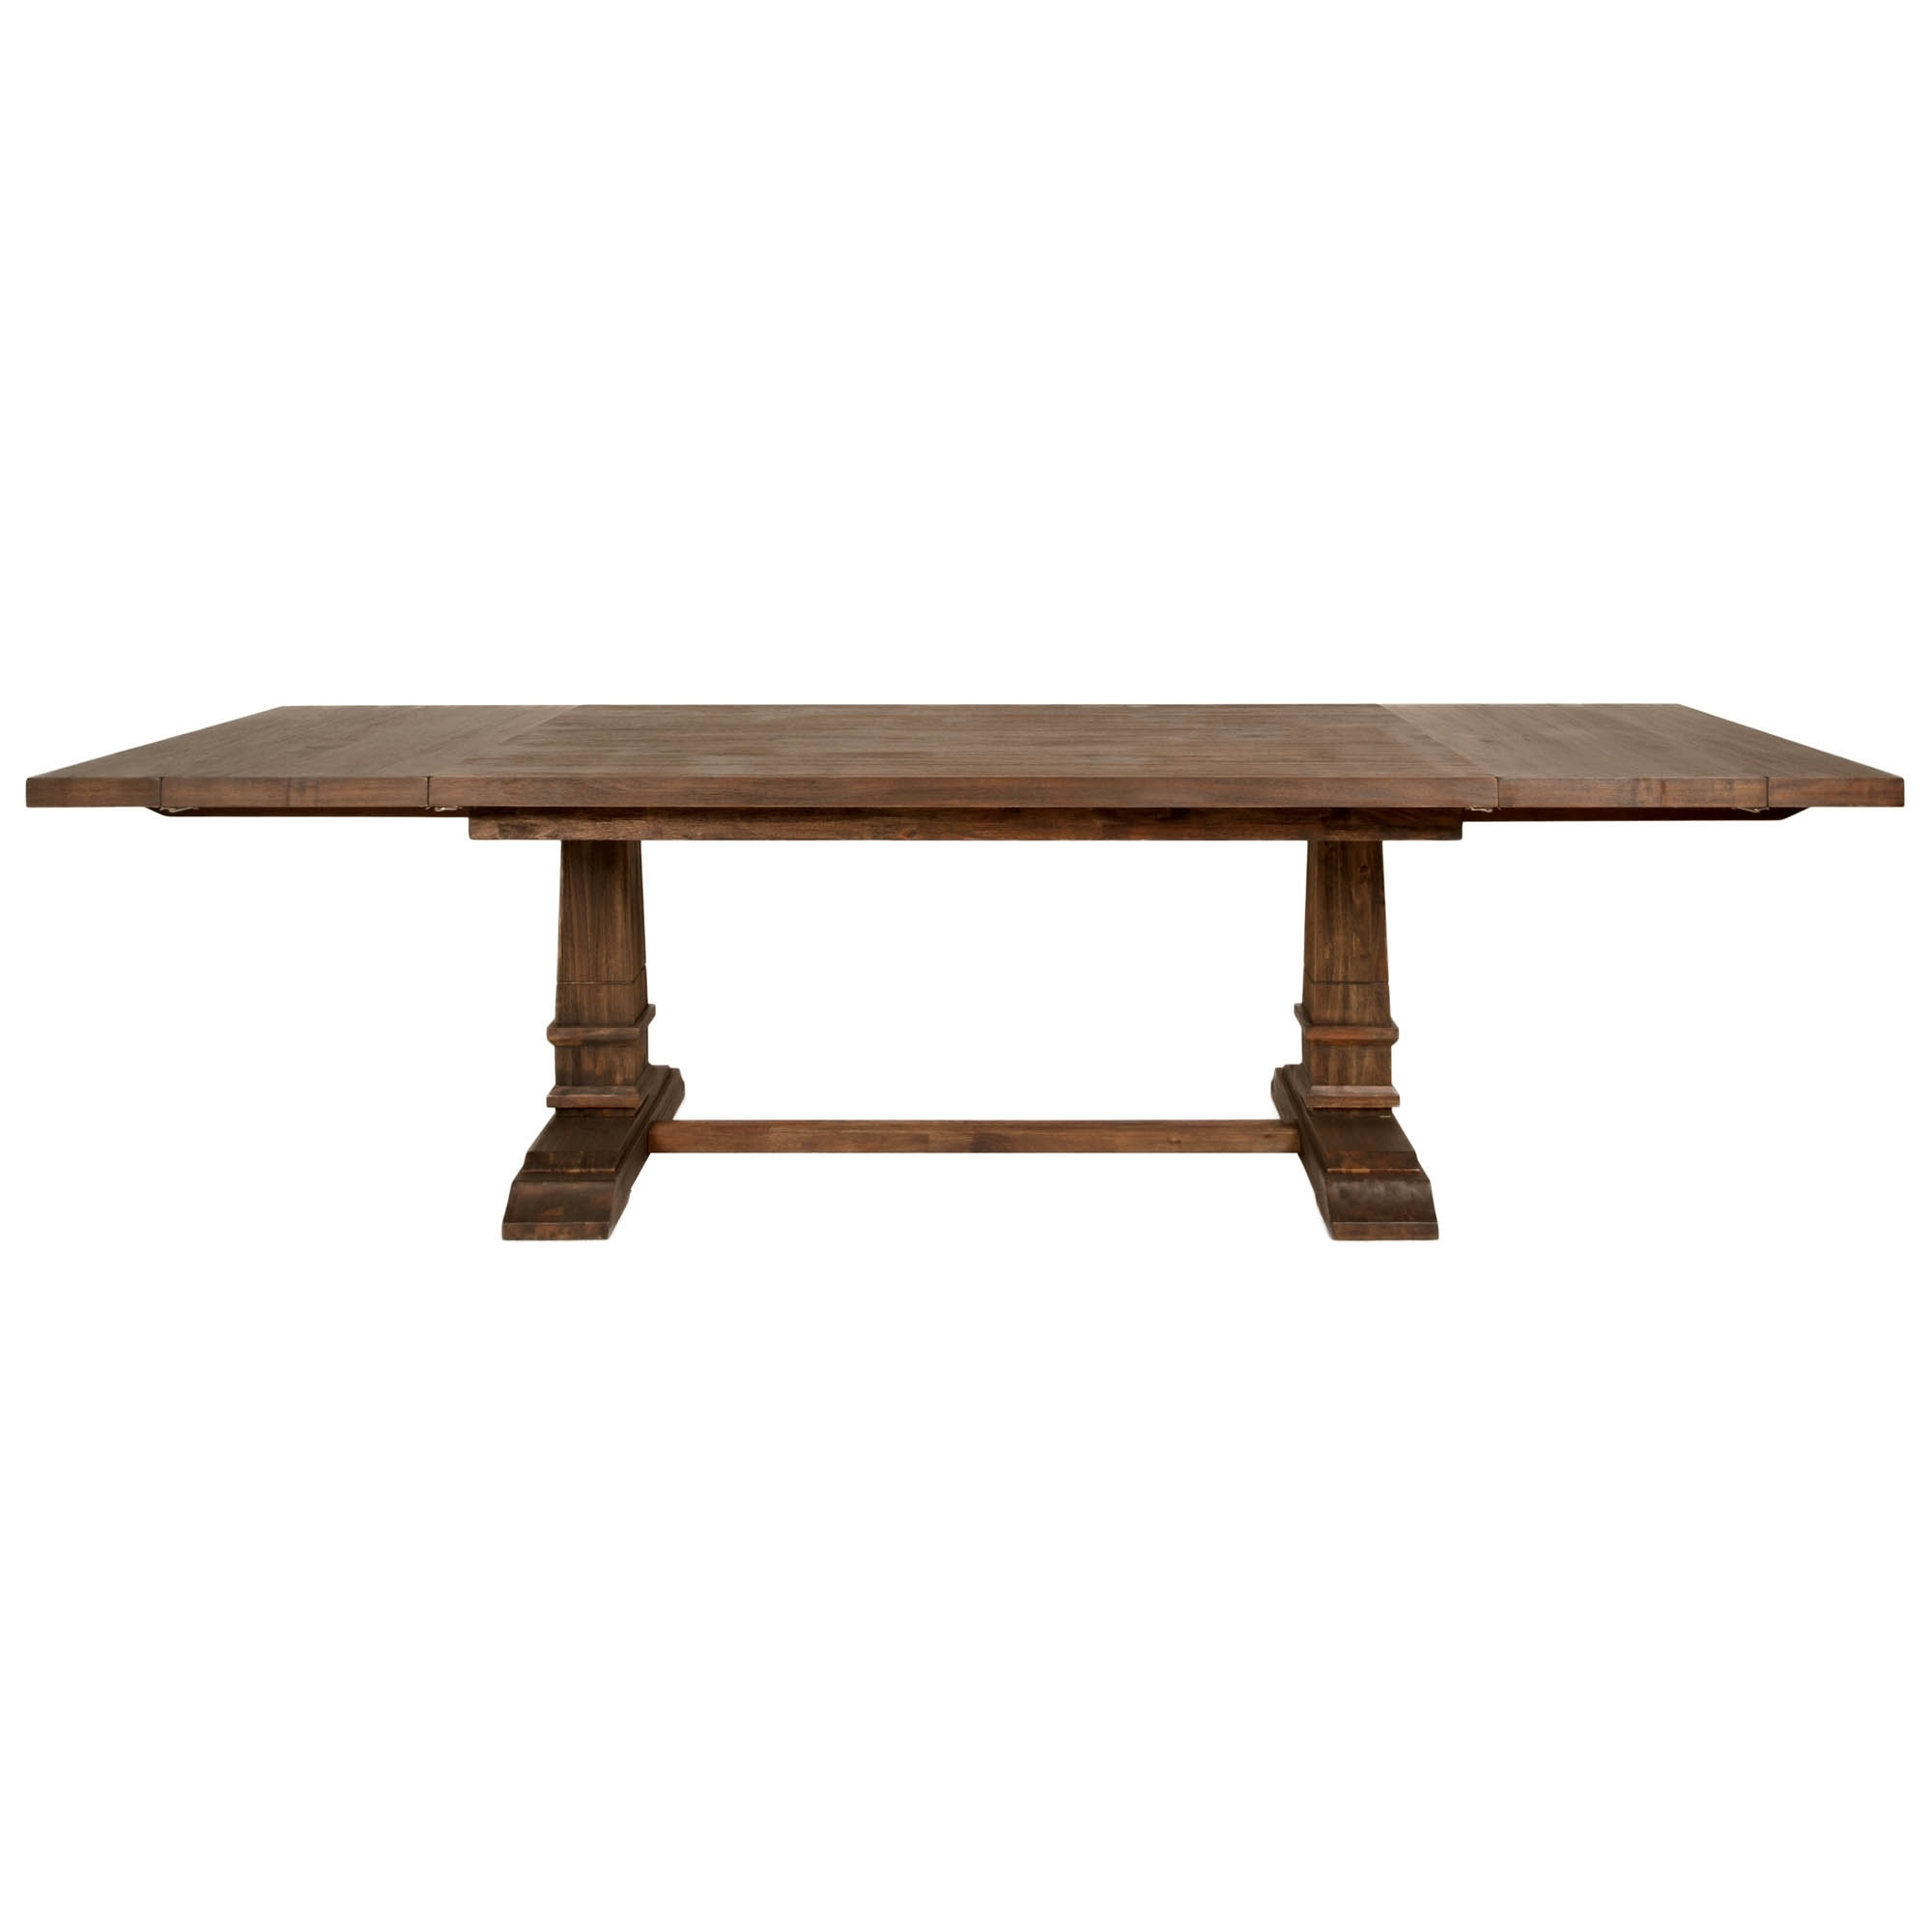 Hudson Rectangle Extension Dining Table In Widely Used Next Hudson Dining Tables (Gallery 12 of 25)